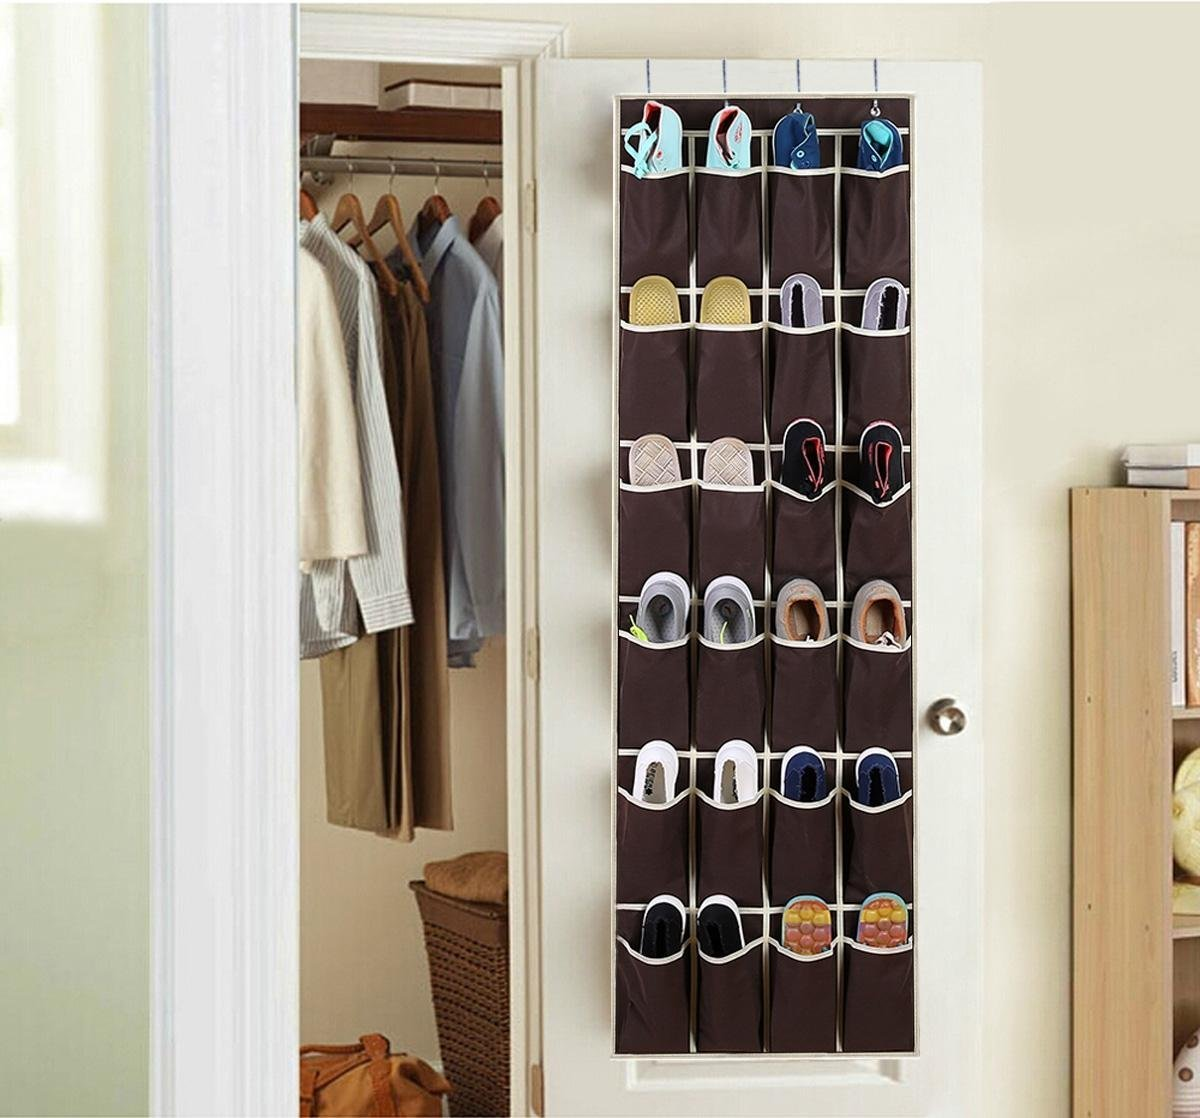 18 Classy Closet Storage Solutions For Your Clothes: The Best DIY Closet Solutions